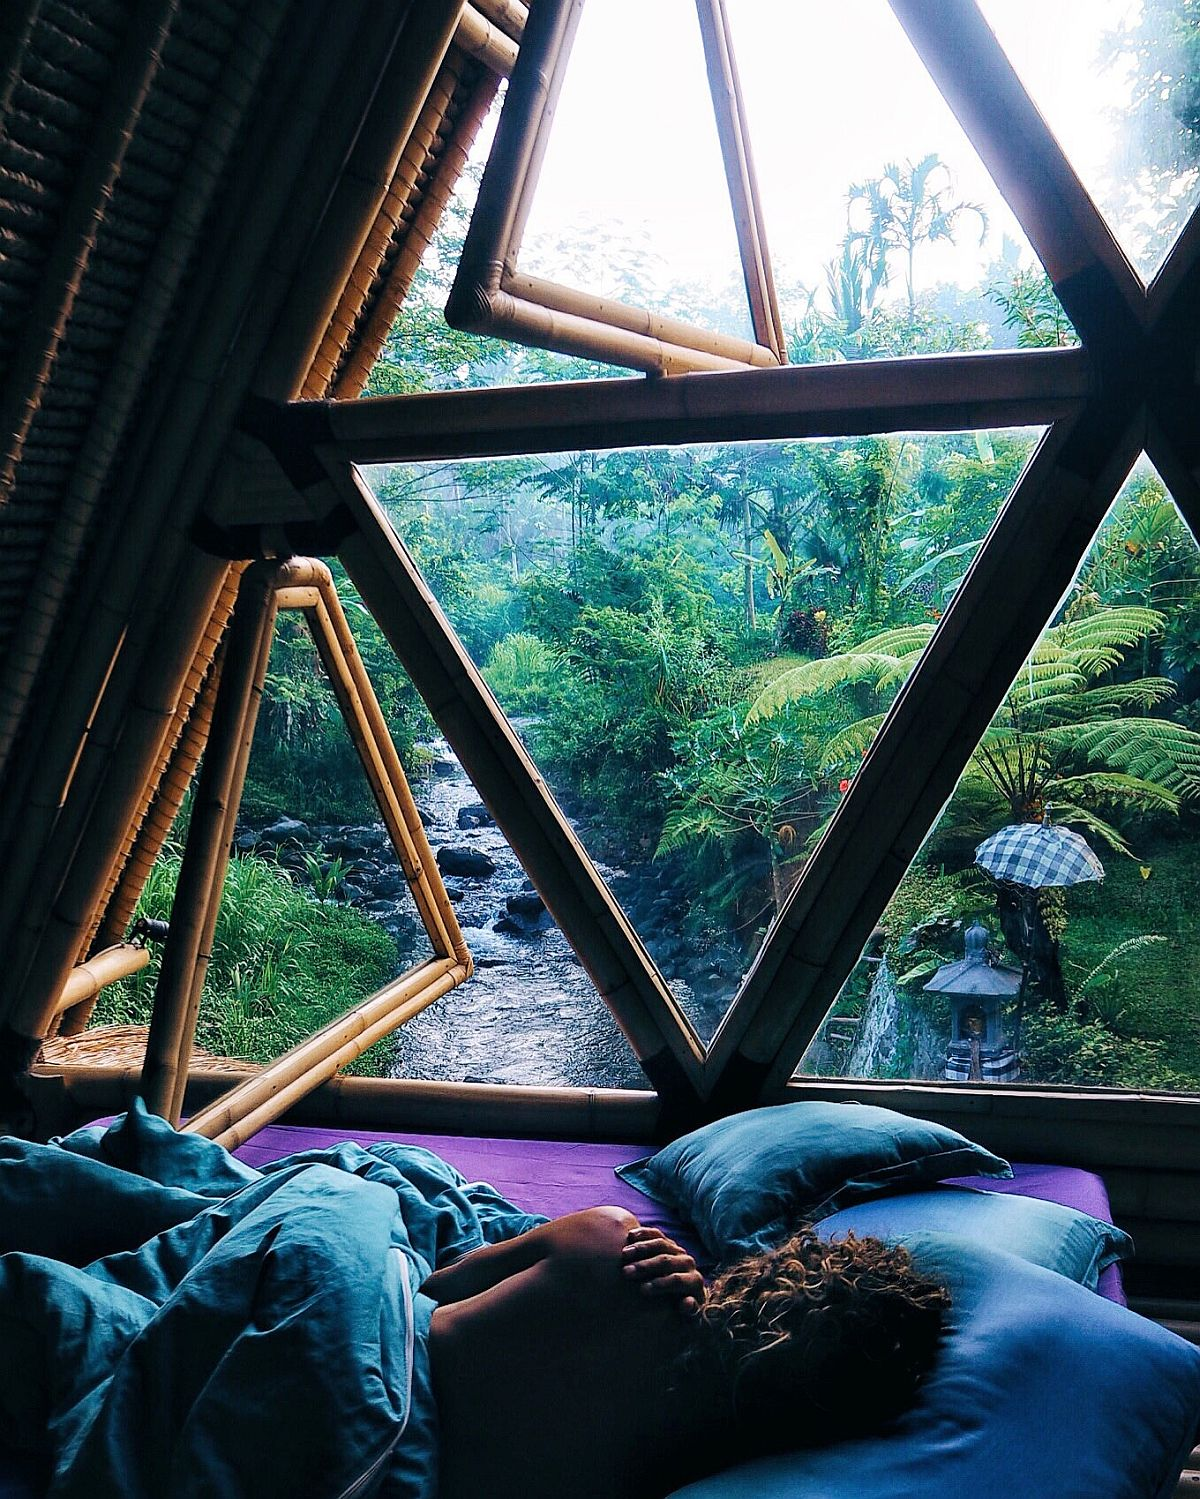 Extraordinary-views-of-the-Bali-jungle-from-the-bedroom-of-the-hideout